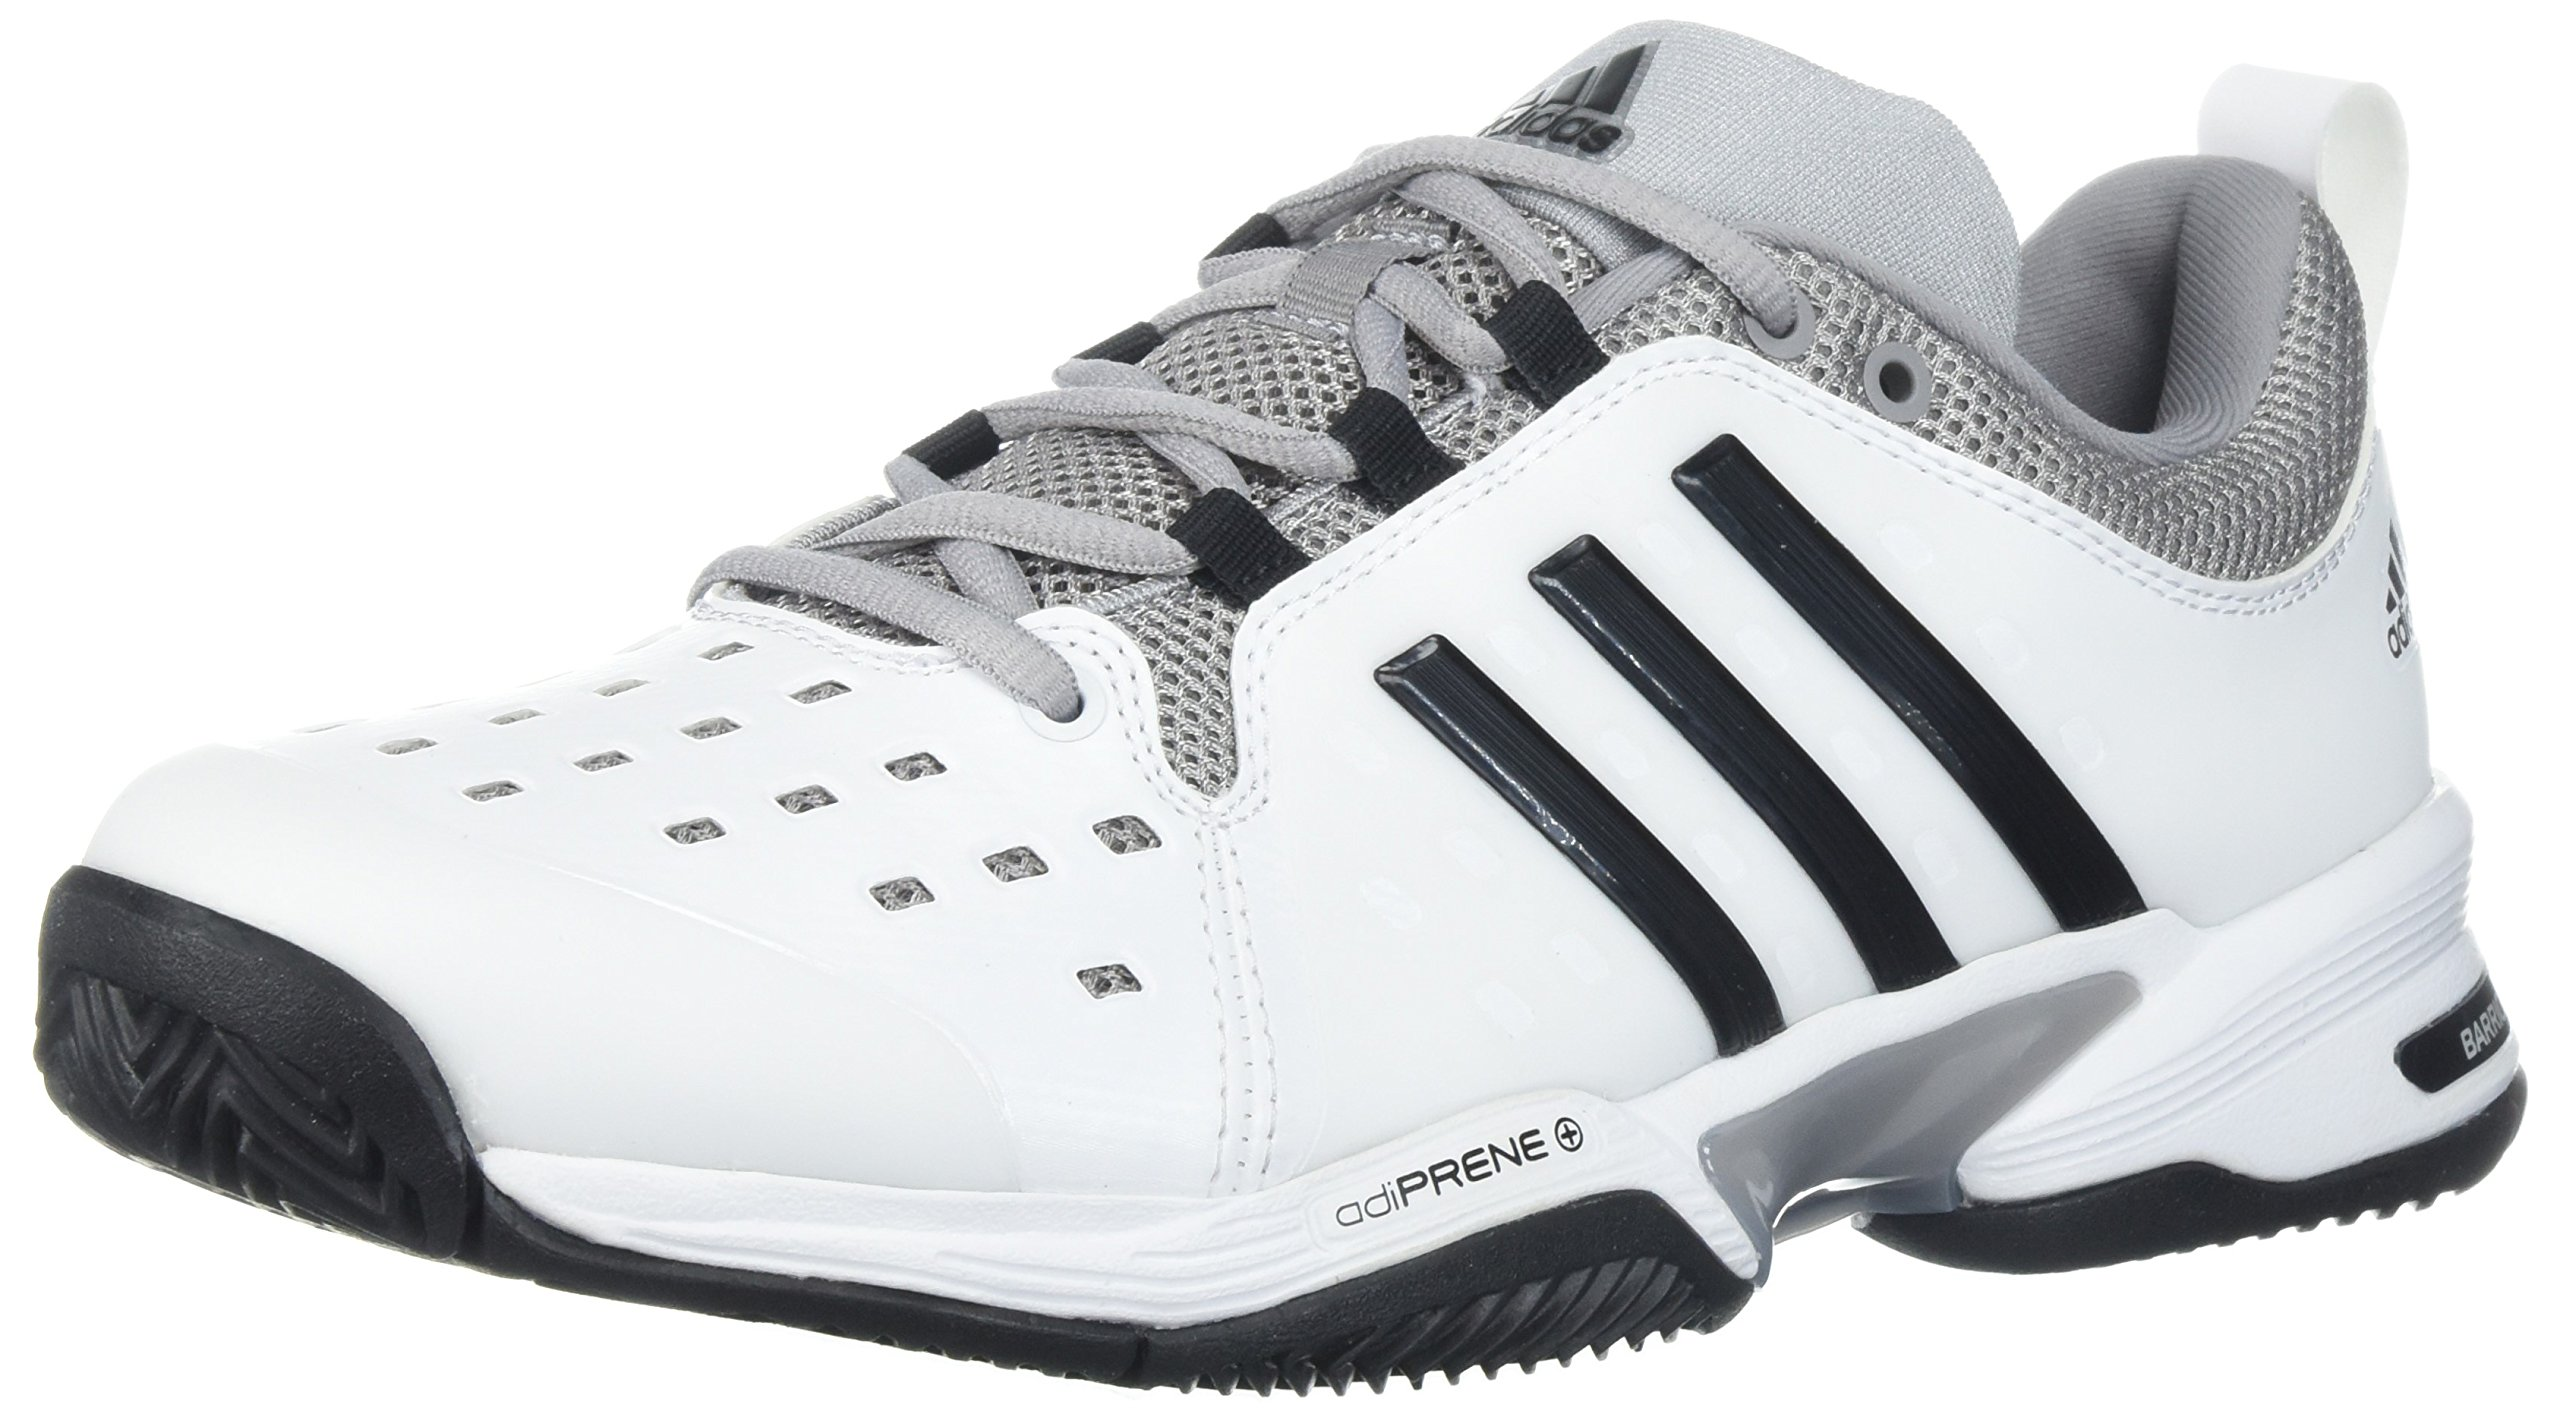 adidas Barricade Classic Tennis Shoe, White/Black/Mid Grey, 4 Wide US by adidas